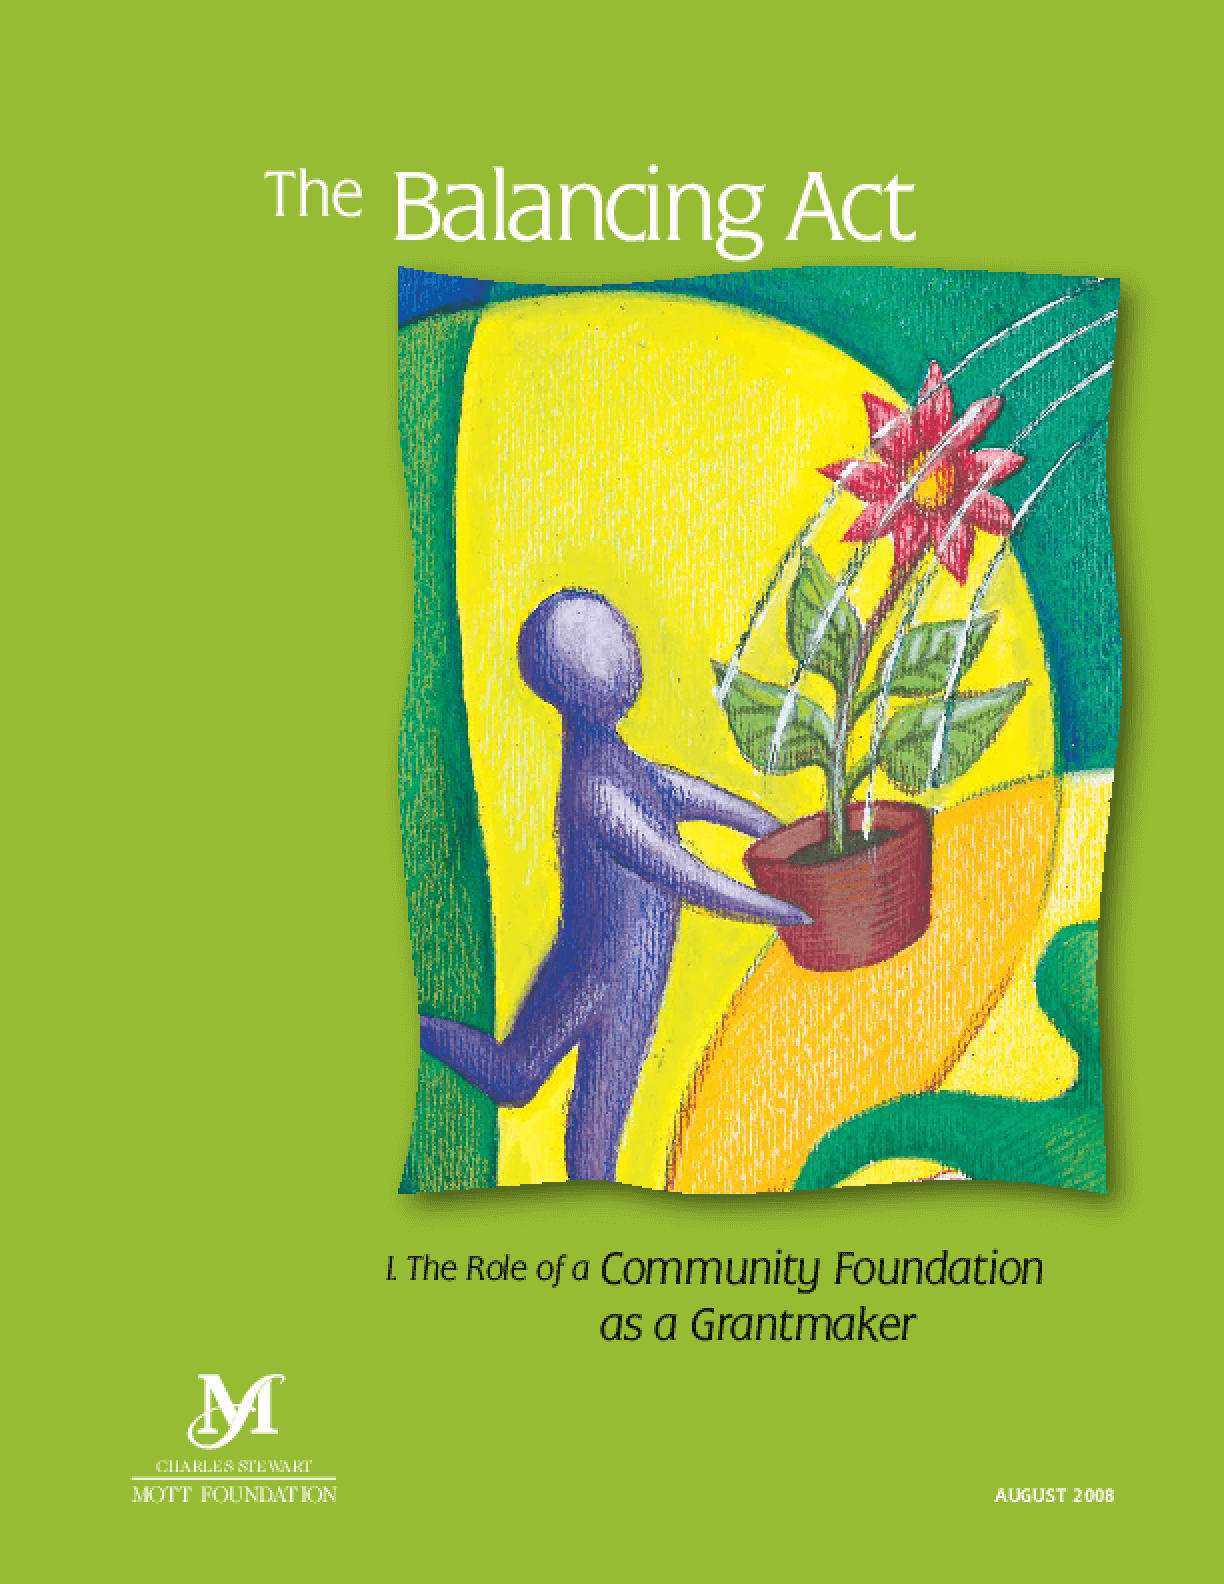 The Balancing Act: The Role of a Community Foundation as a Grantmaker